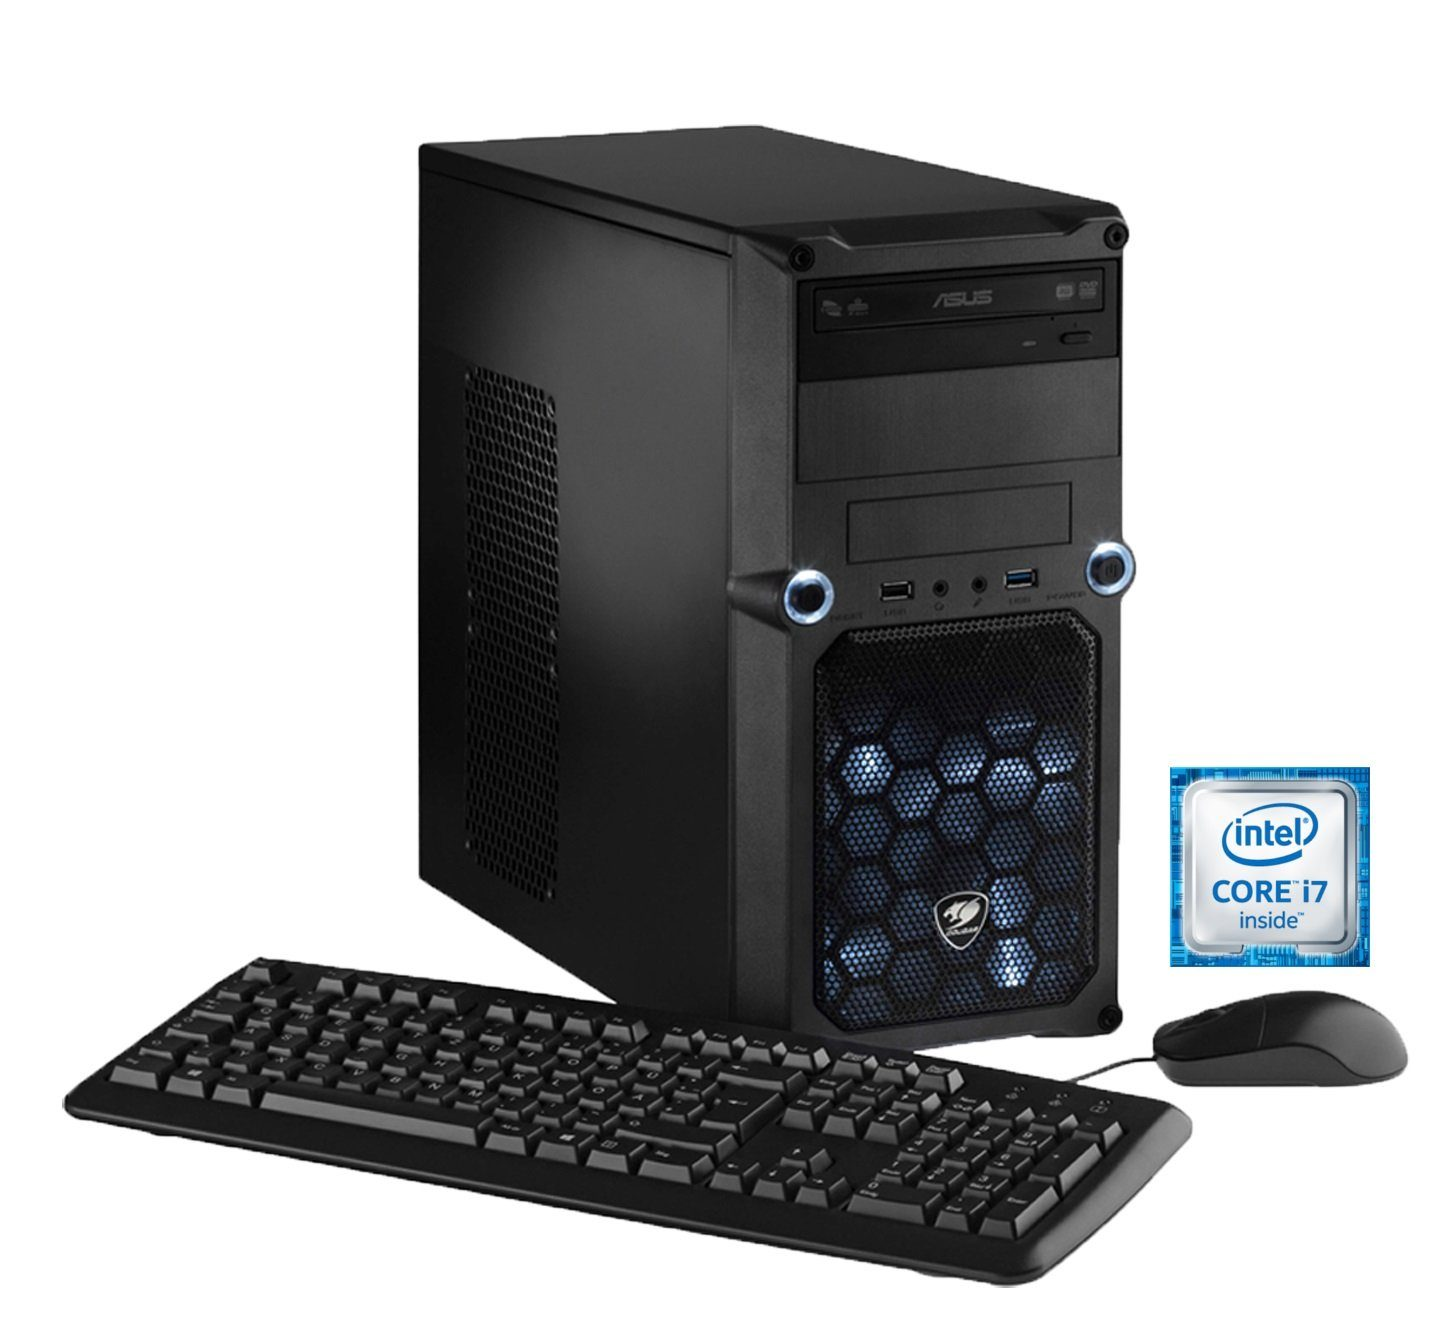 Hyrican Gaming PC Intel® i7-6700, 8GB, 1TB, GeForce® GTX 950 »CyberGamer 5277«